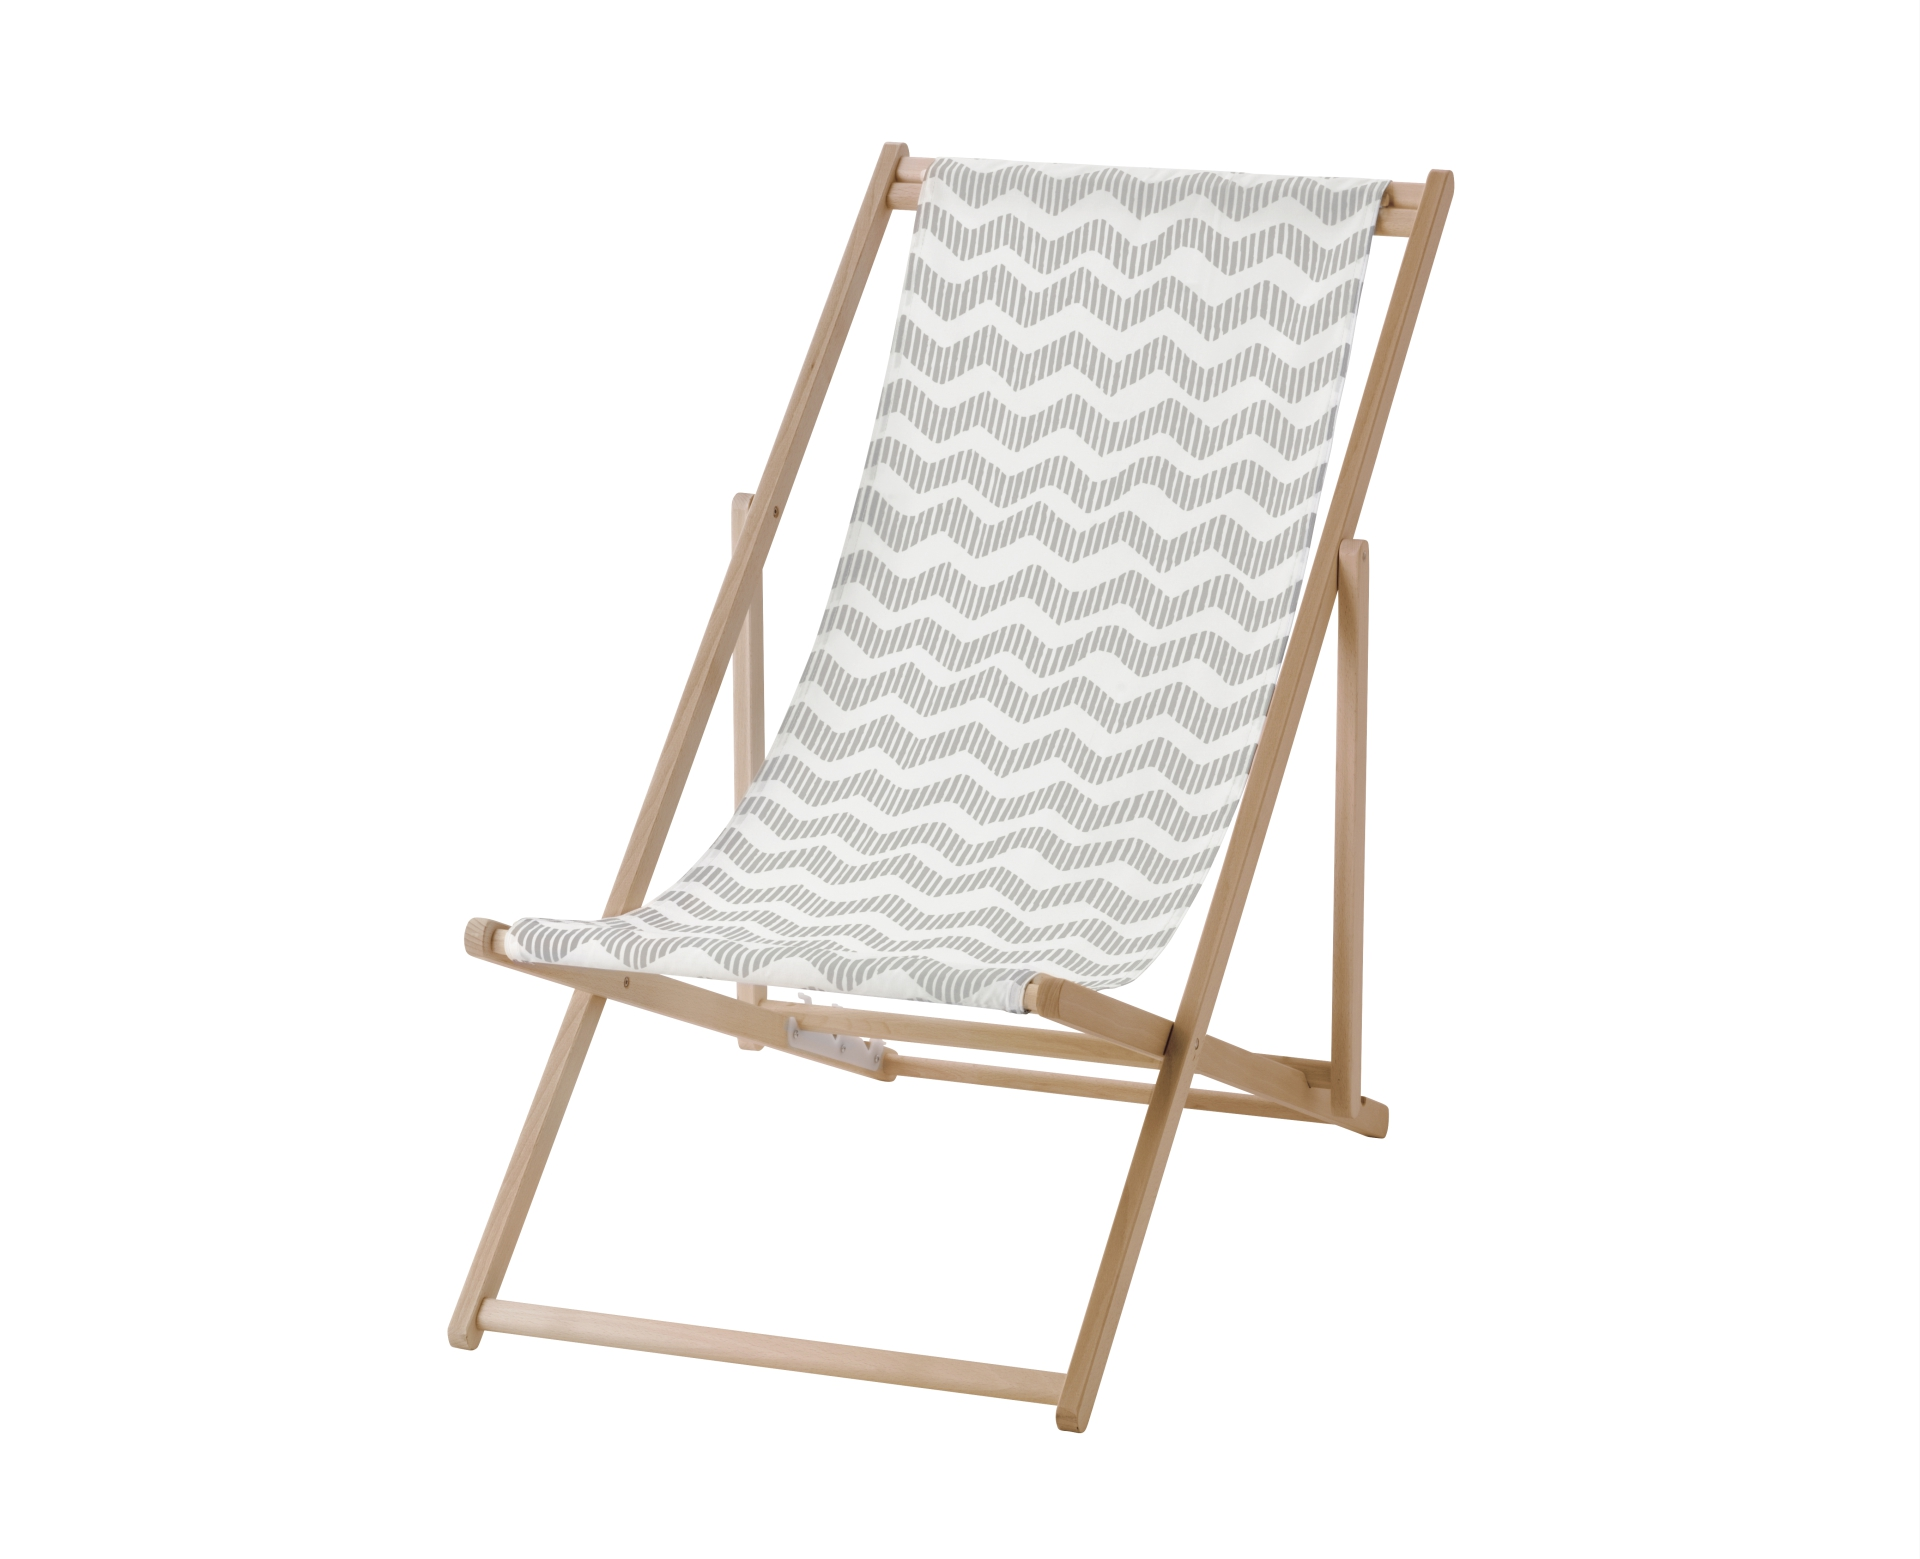 Best beach chair 2013 - Beach Chair With Article Number 303 120 24